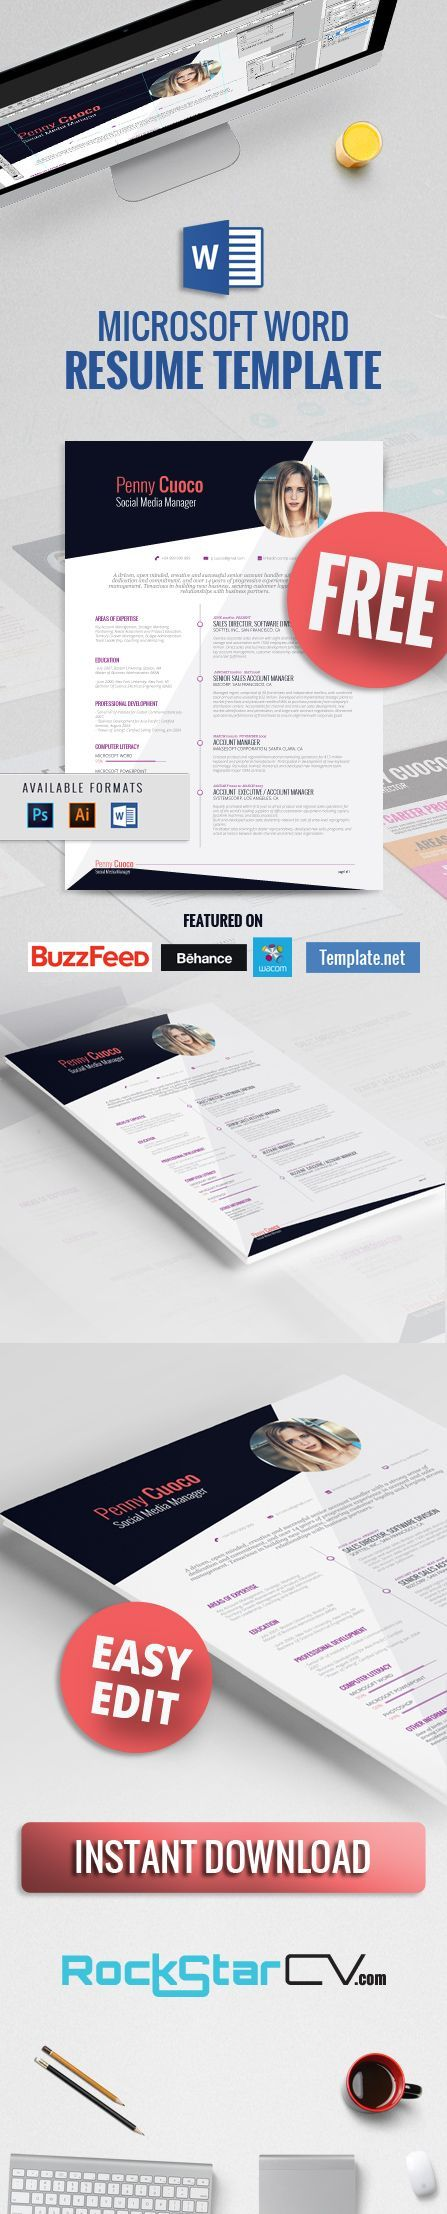 ★ Askella – FREE Resume Template ★  If you are looking for a #free #resume #template, please check out:  http://rockstarcv.com/product/askella-resume-template/   It's fully #editable and comes in MS Word, Photoshop and Illustrator format.